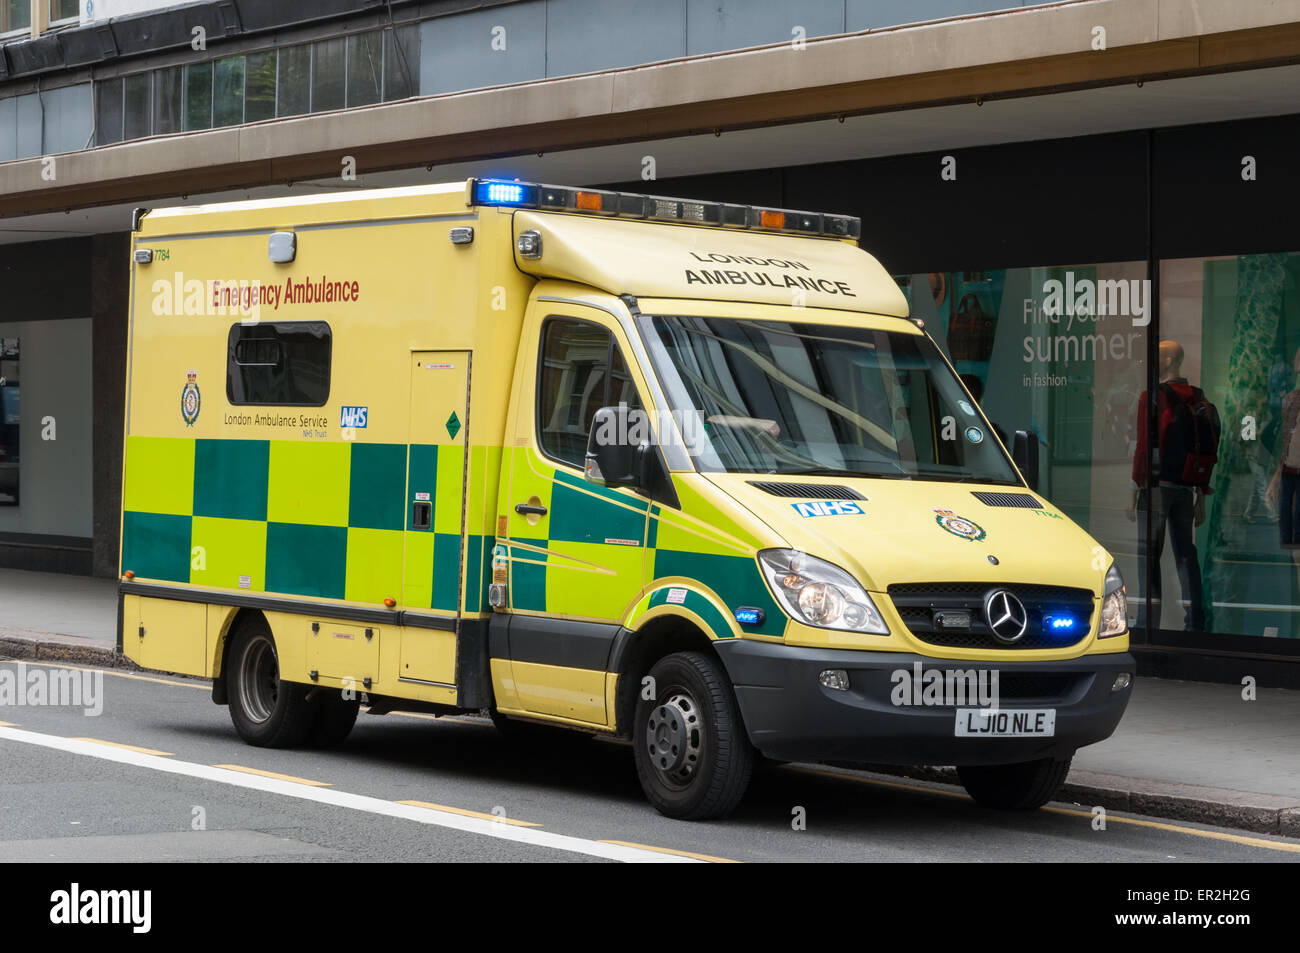 London Ambulance Car Stock Photo Royalty Free Image